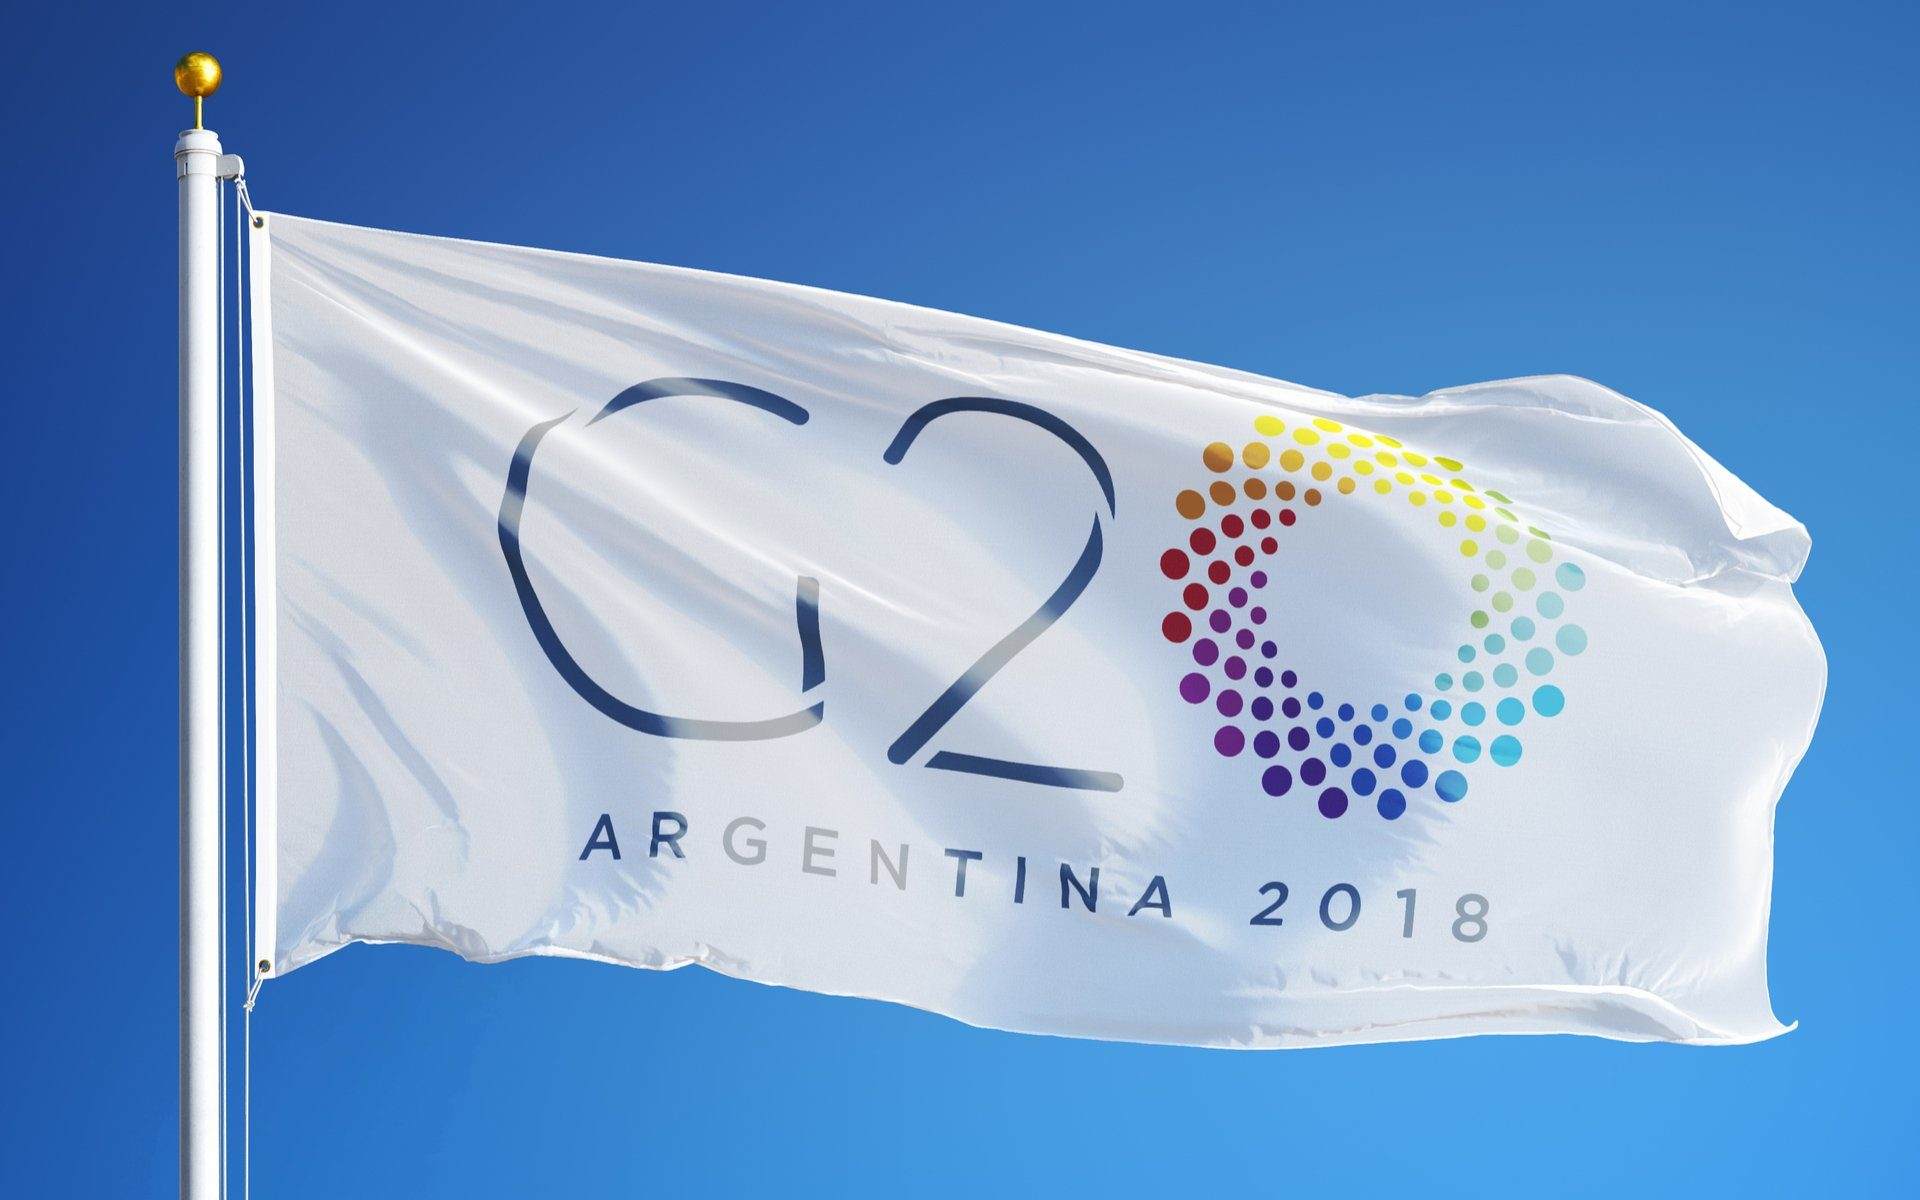 G20 Summit: We Will Regulate Cryptocurrencies 'In Line with FATF Standards'